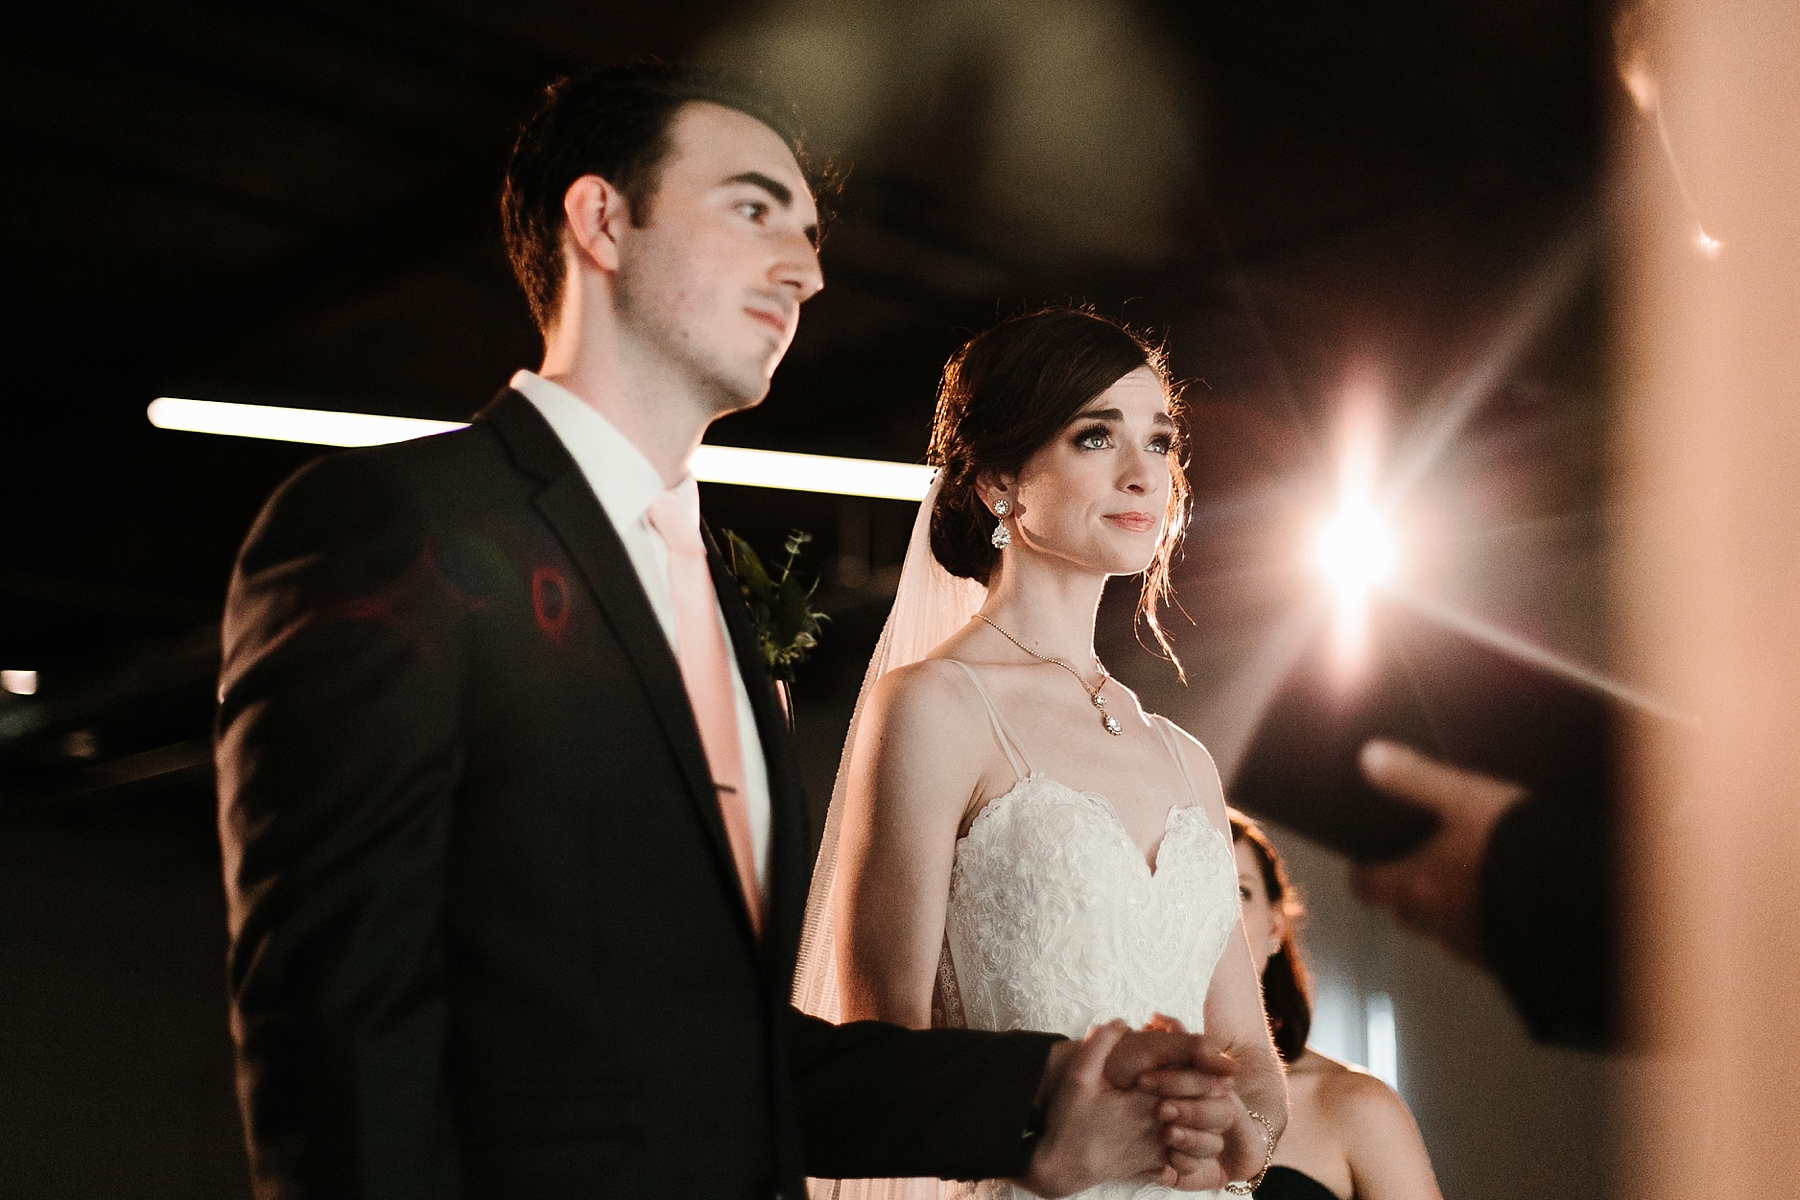 Emily + Caleb _ an elegant, intentional, industrial style wedding with navy + gold accents at 6500 in Dallas, TX by North Texas Wedding Photographer Rachel Meagan Photography _ 084